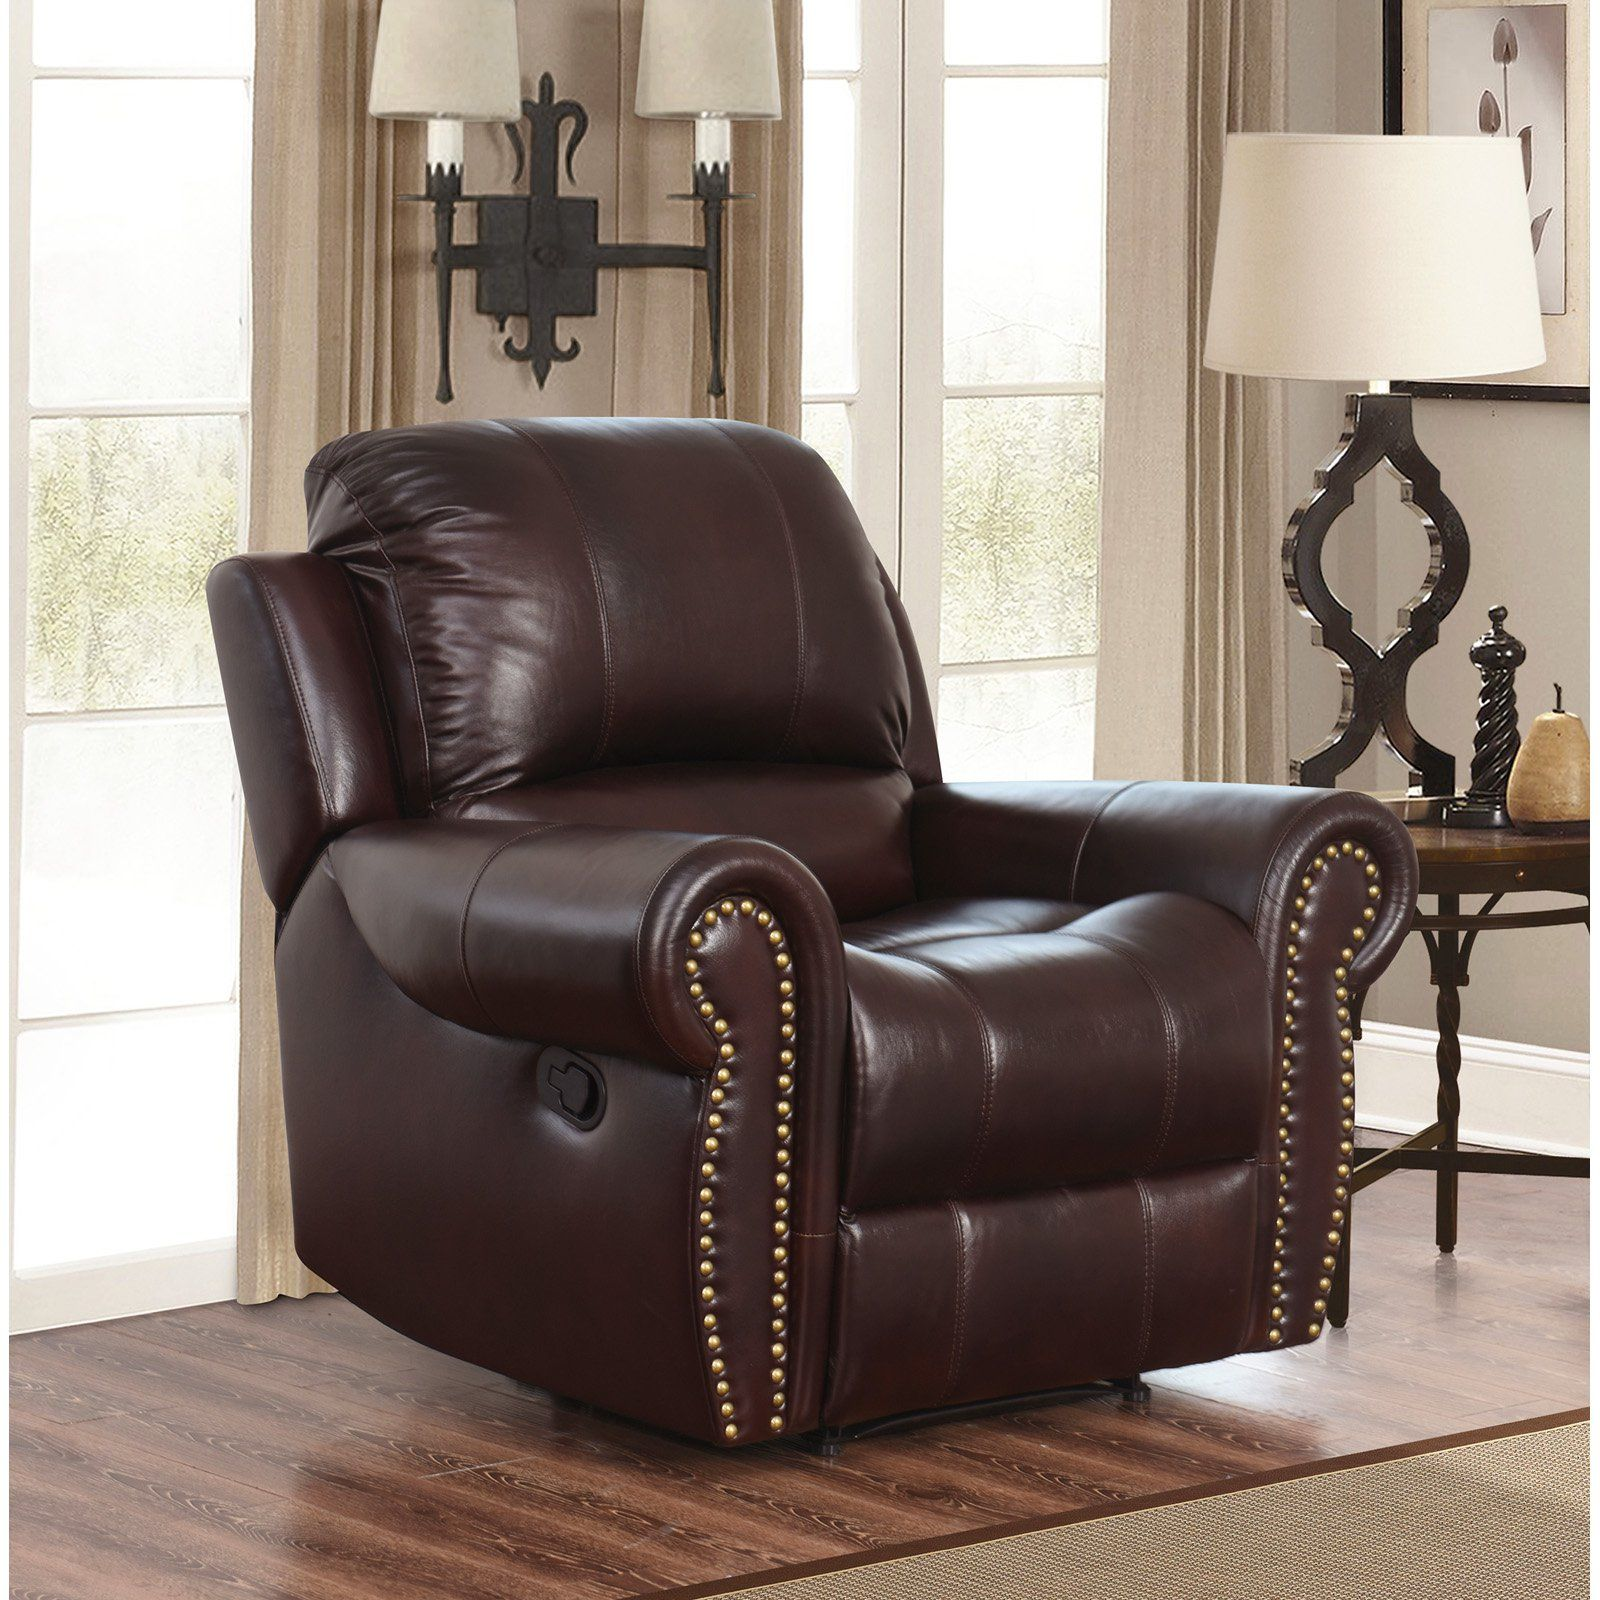 Amazing Italian Leather Chairs Living Backyard Courts Systems Design Build Firms